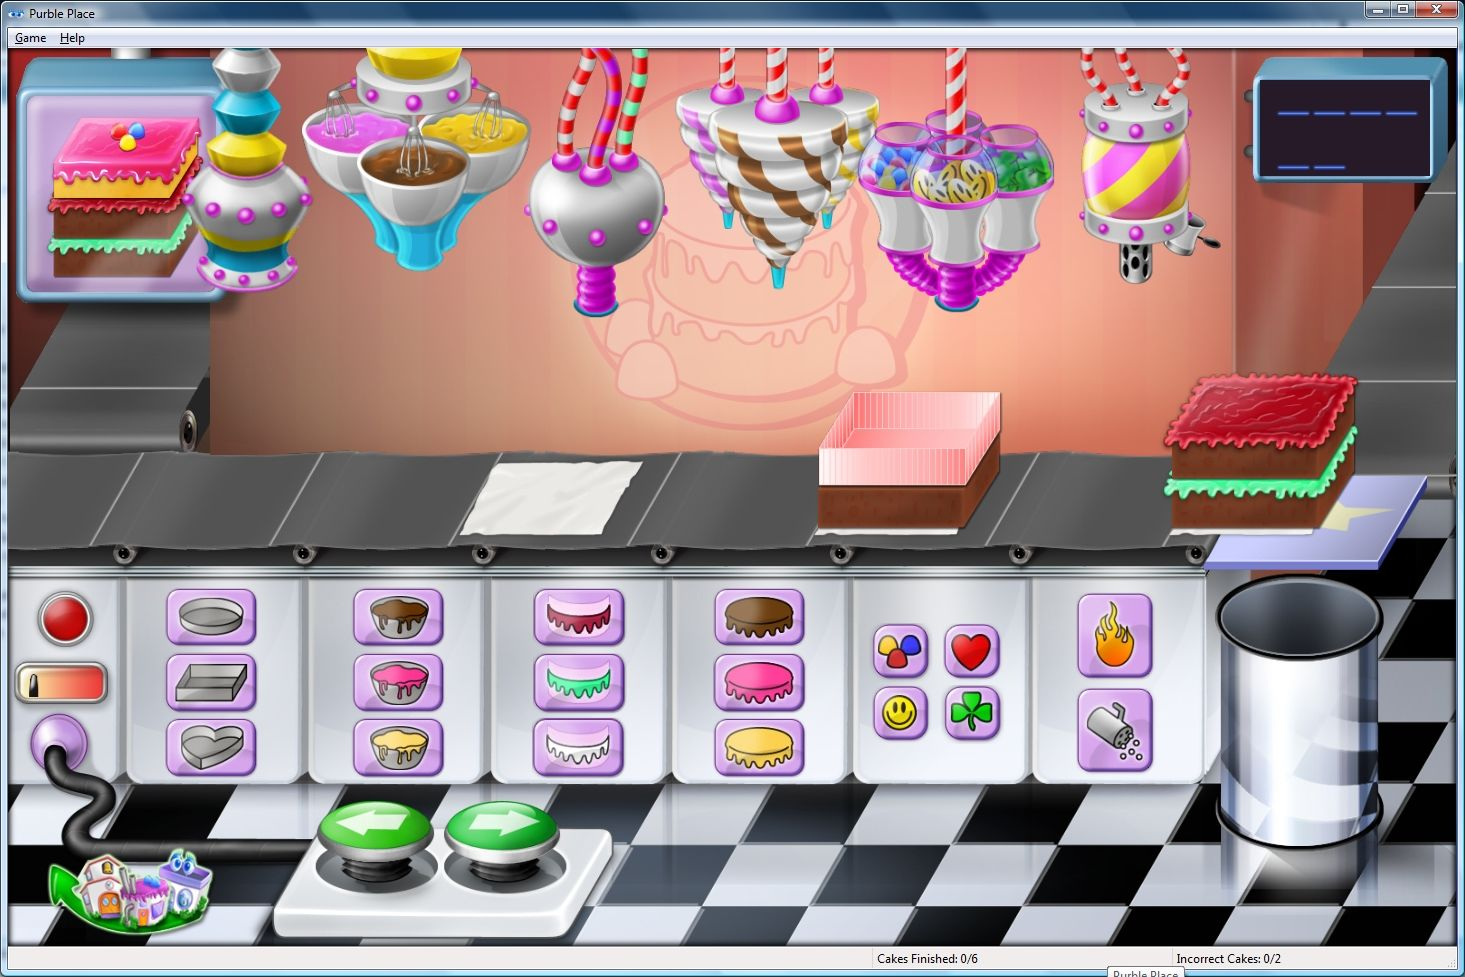 purble place download for windows 7